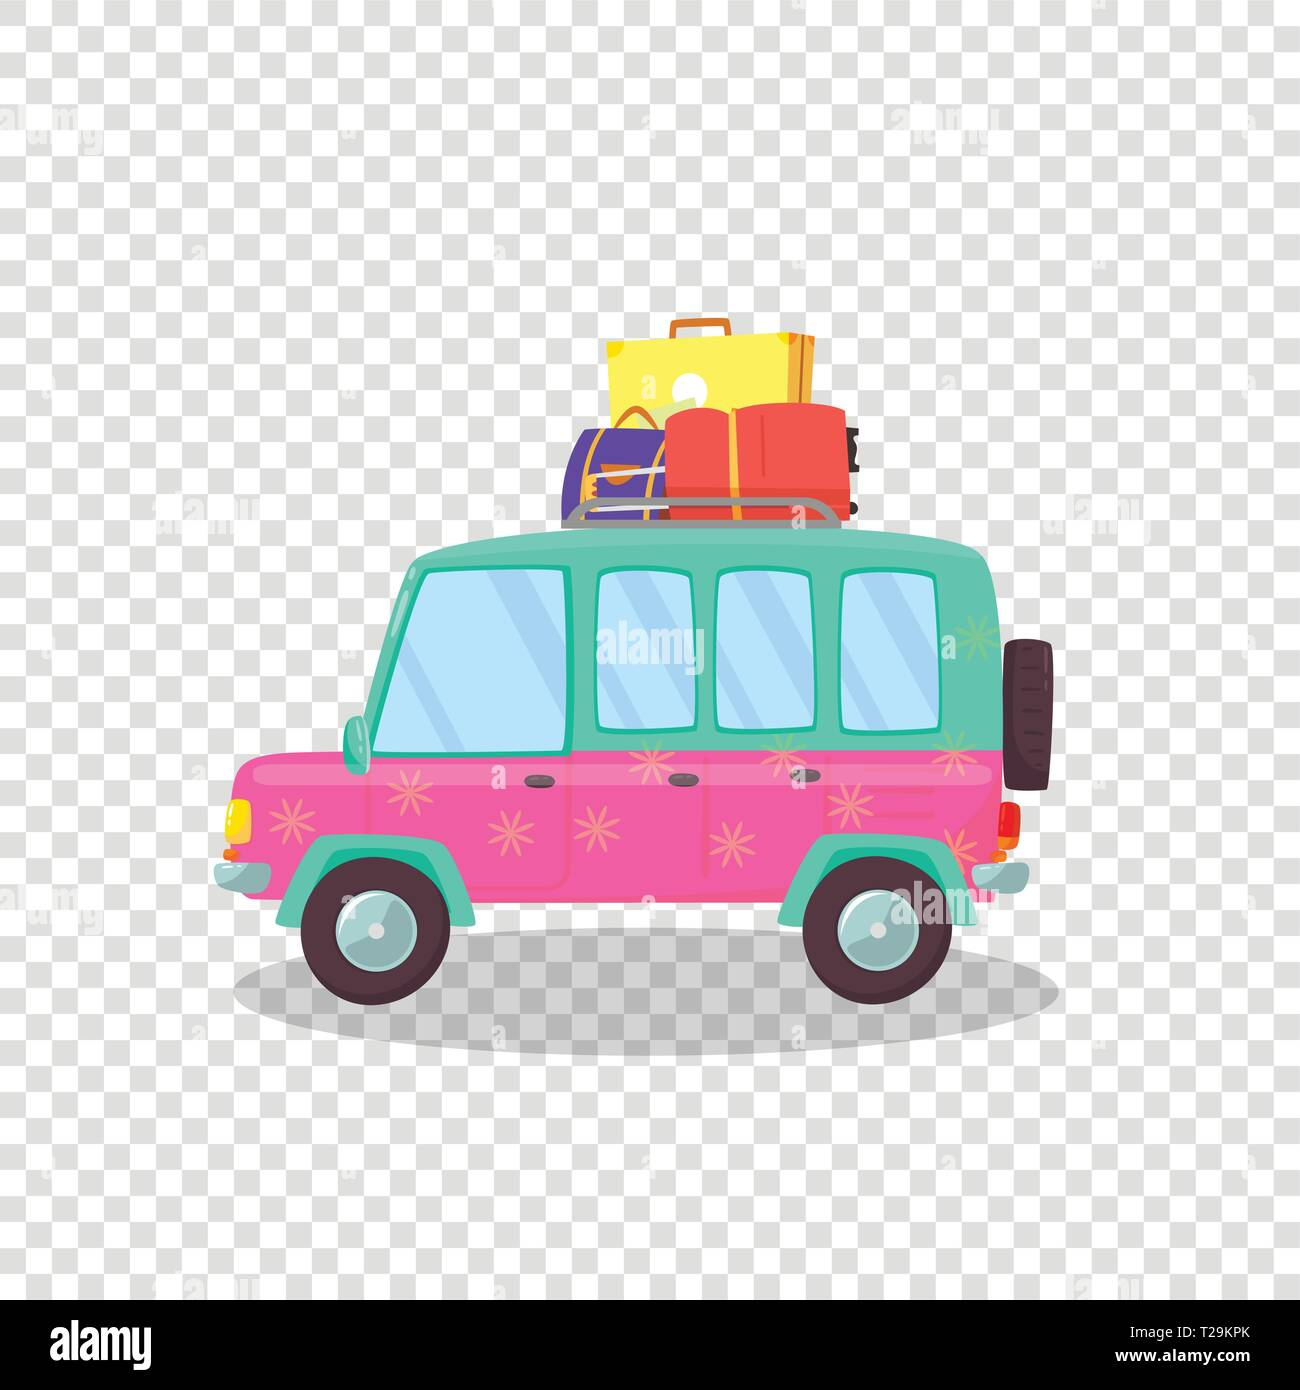 Pink, Green Modern Car with Spacious Trunk and Luggage on Roof Isolated on Transparent Background. Side View of Hatchback Auto for Family Traveling. C - Stock Vector